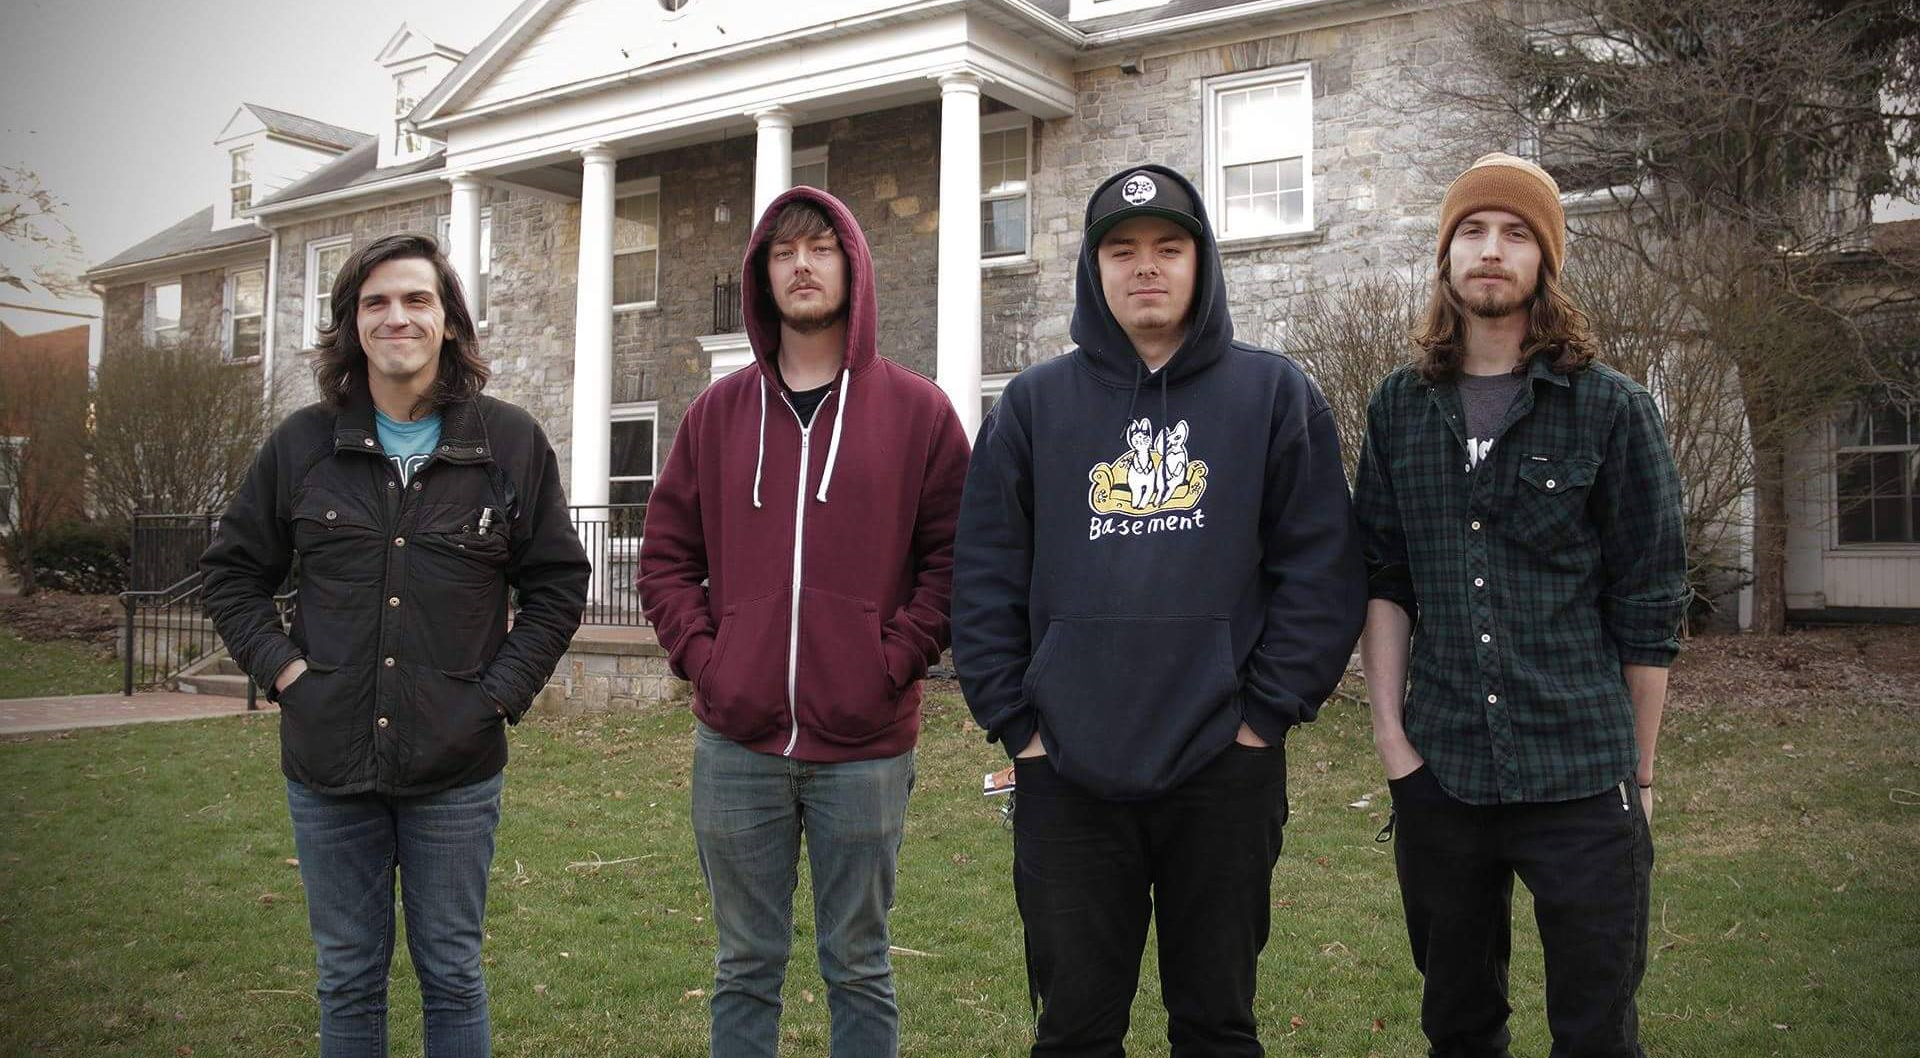 Interview with Pines   Emo, Rock, Alternative  Port Republic / Hammonton, NJ  Posted March 28, 2016